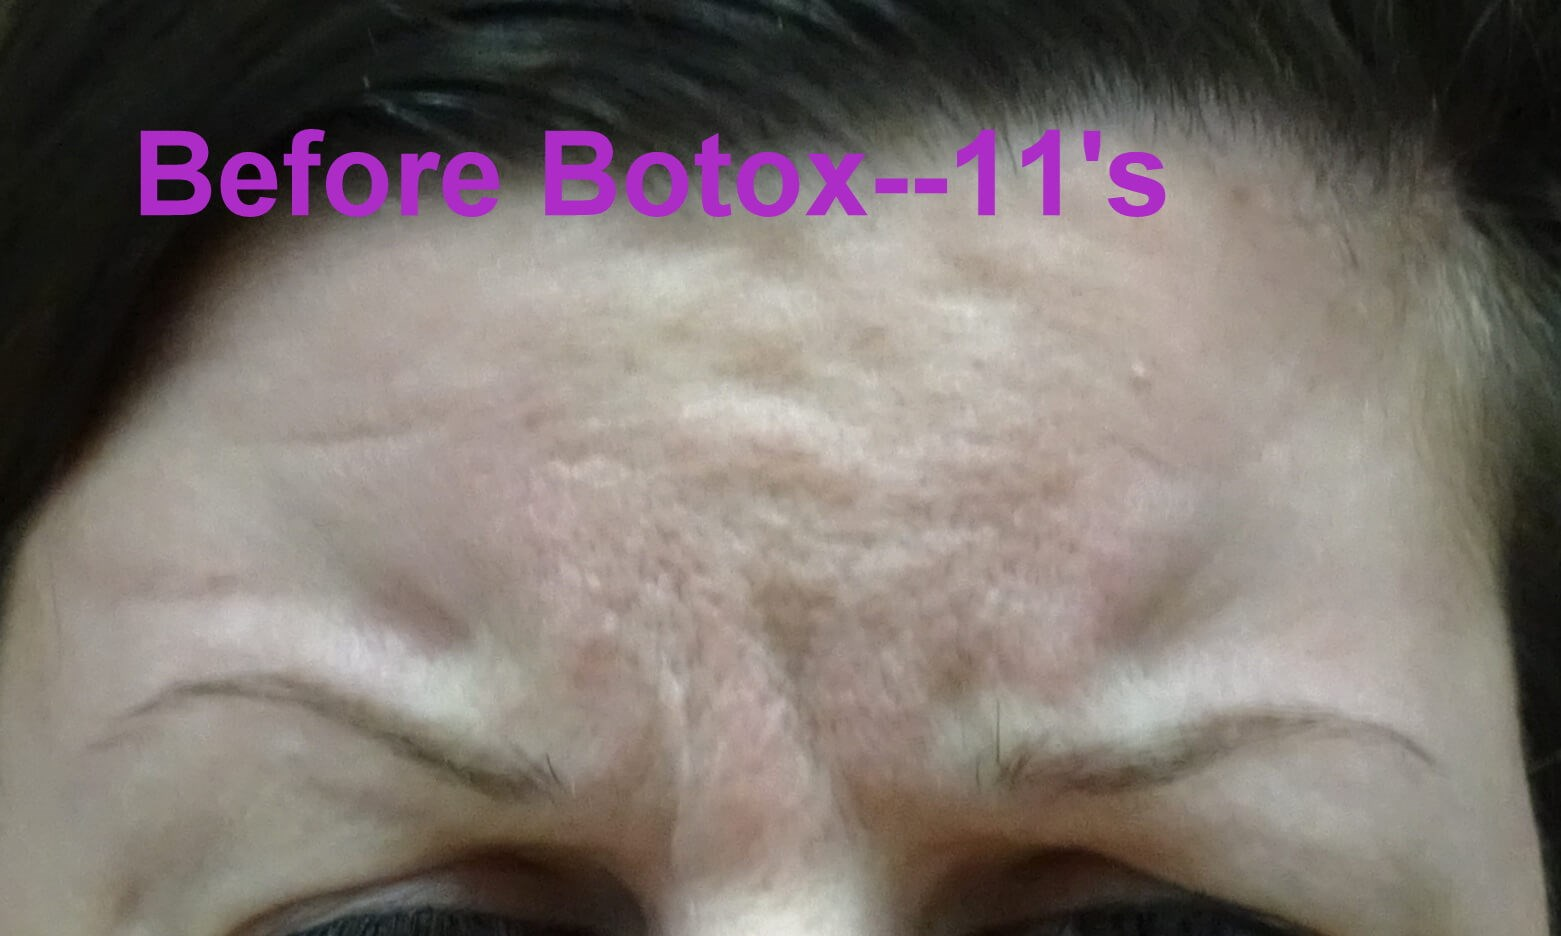 Botox Day #4/14--frowning Frowning (11's) Before Botox